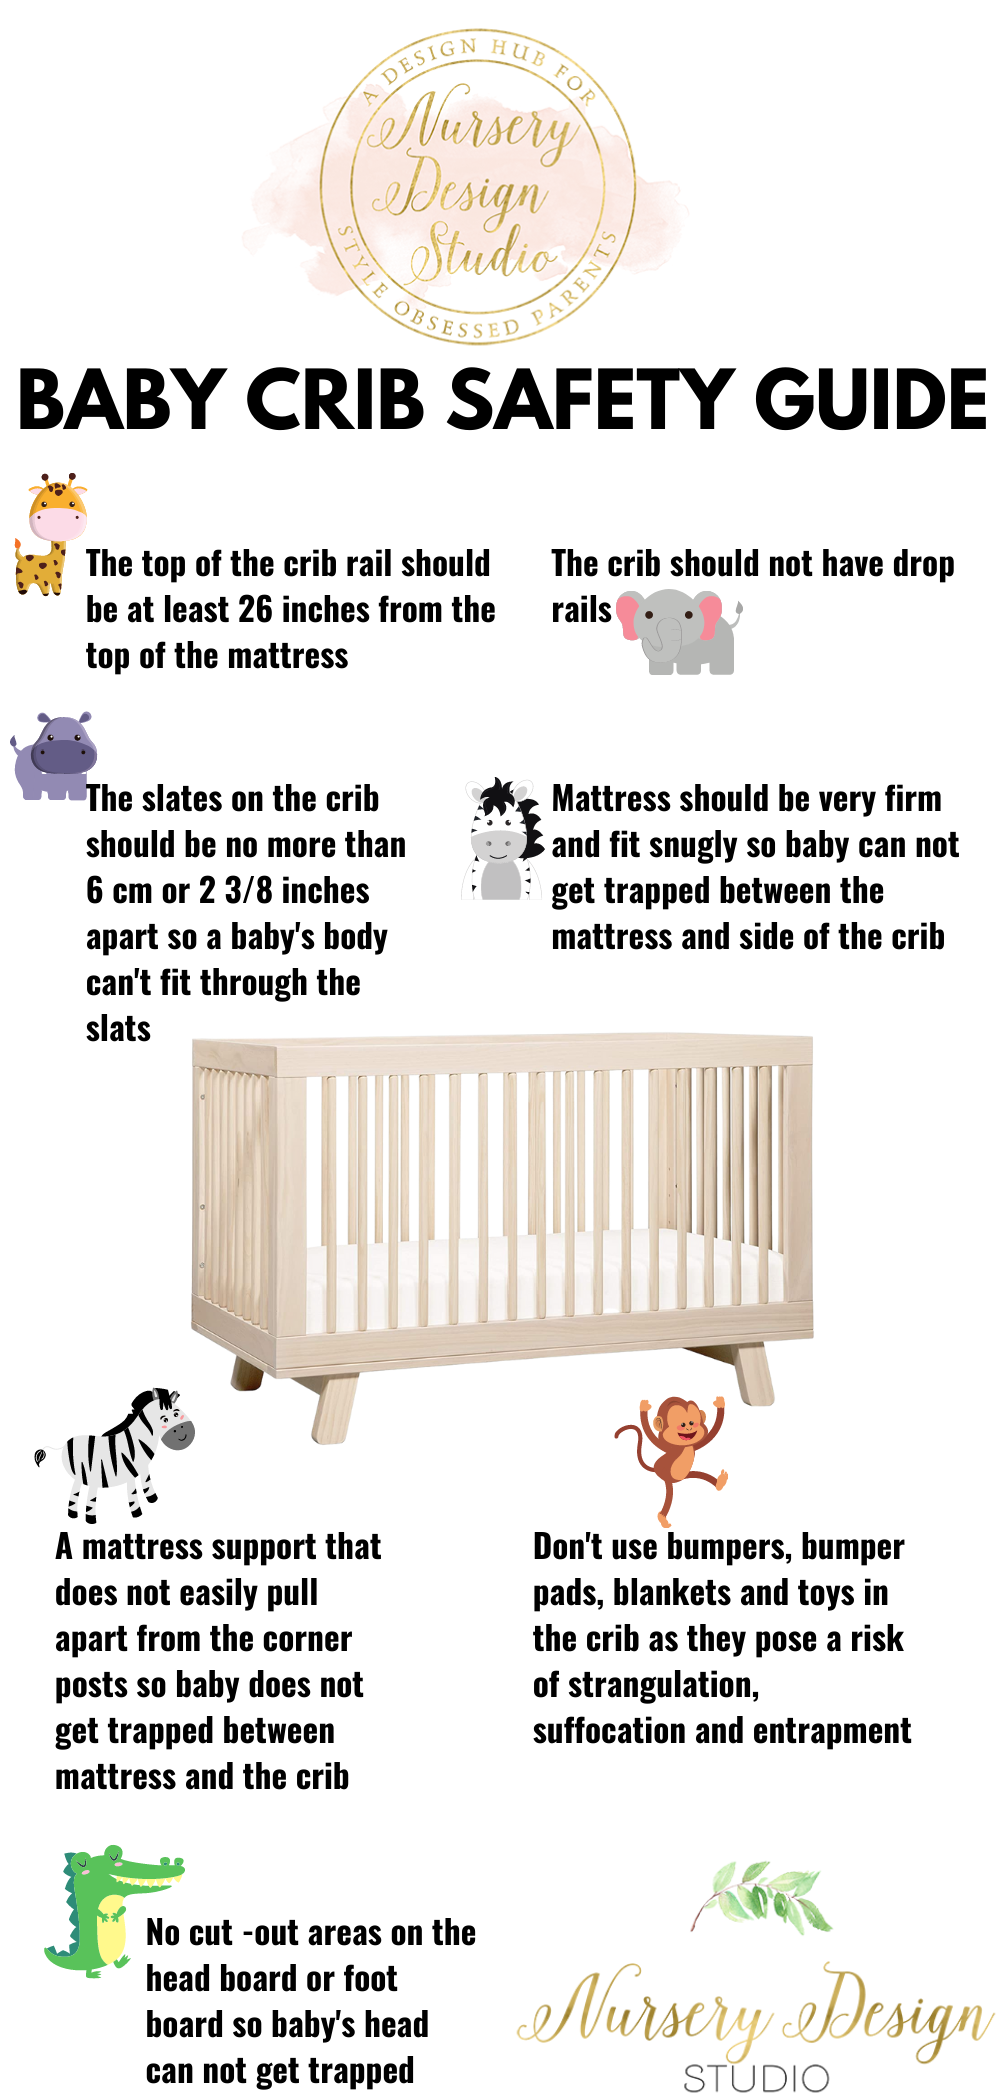 BABY CRIB SAFETY GUIDE